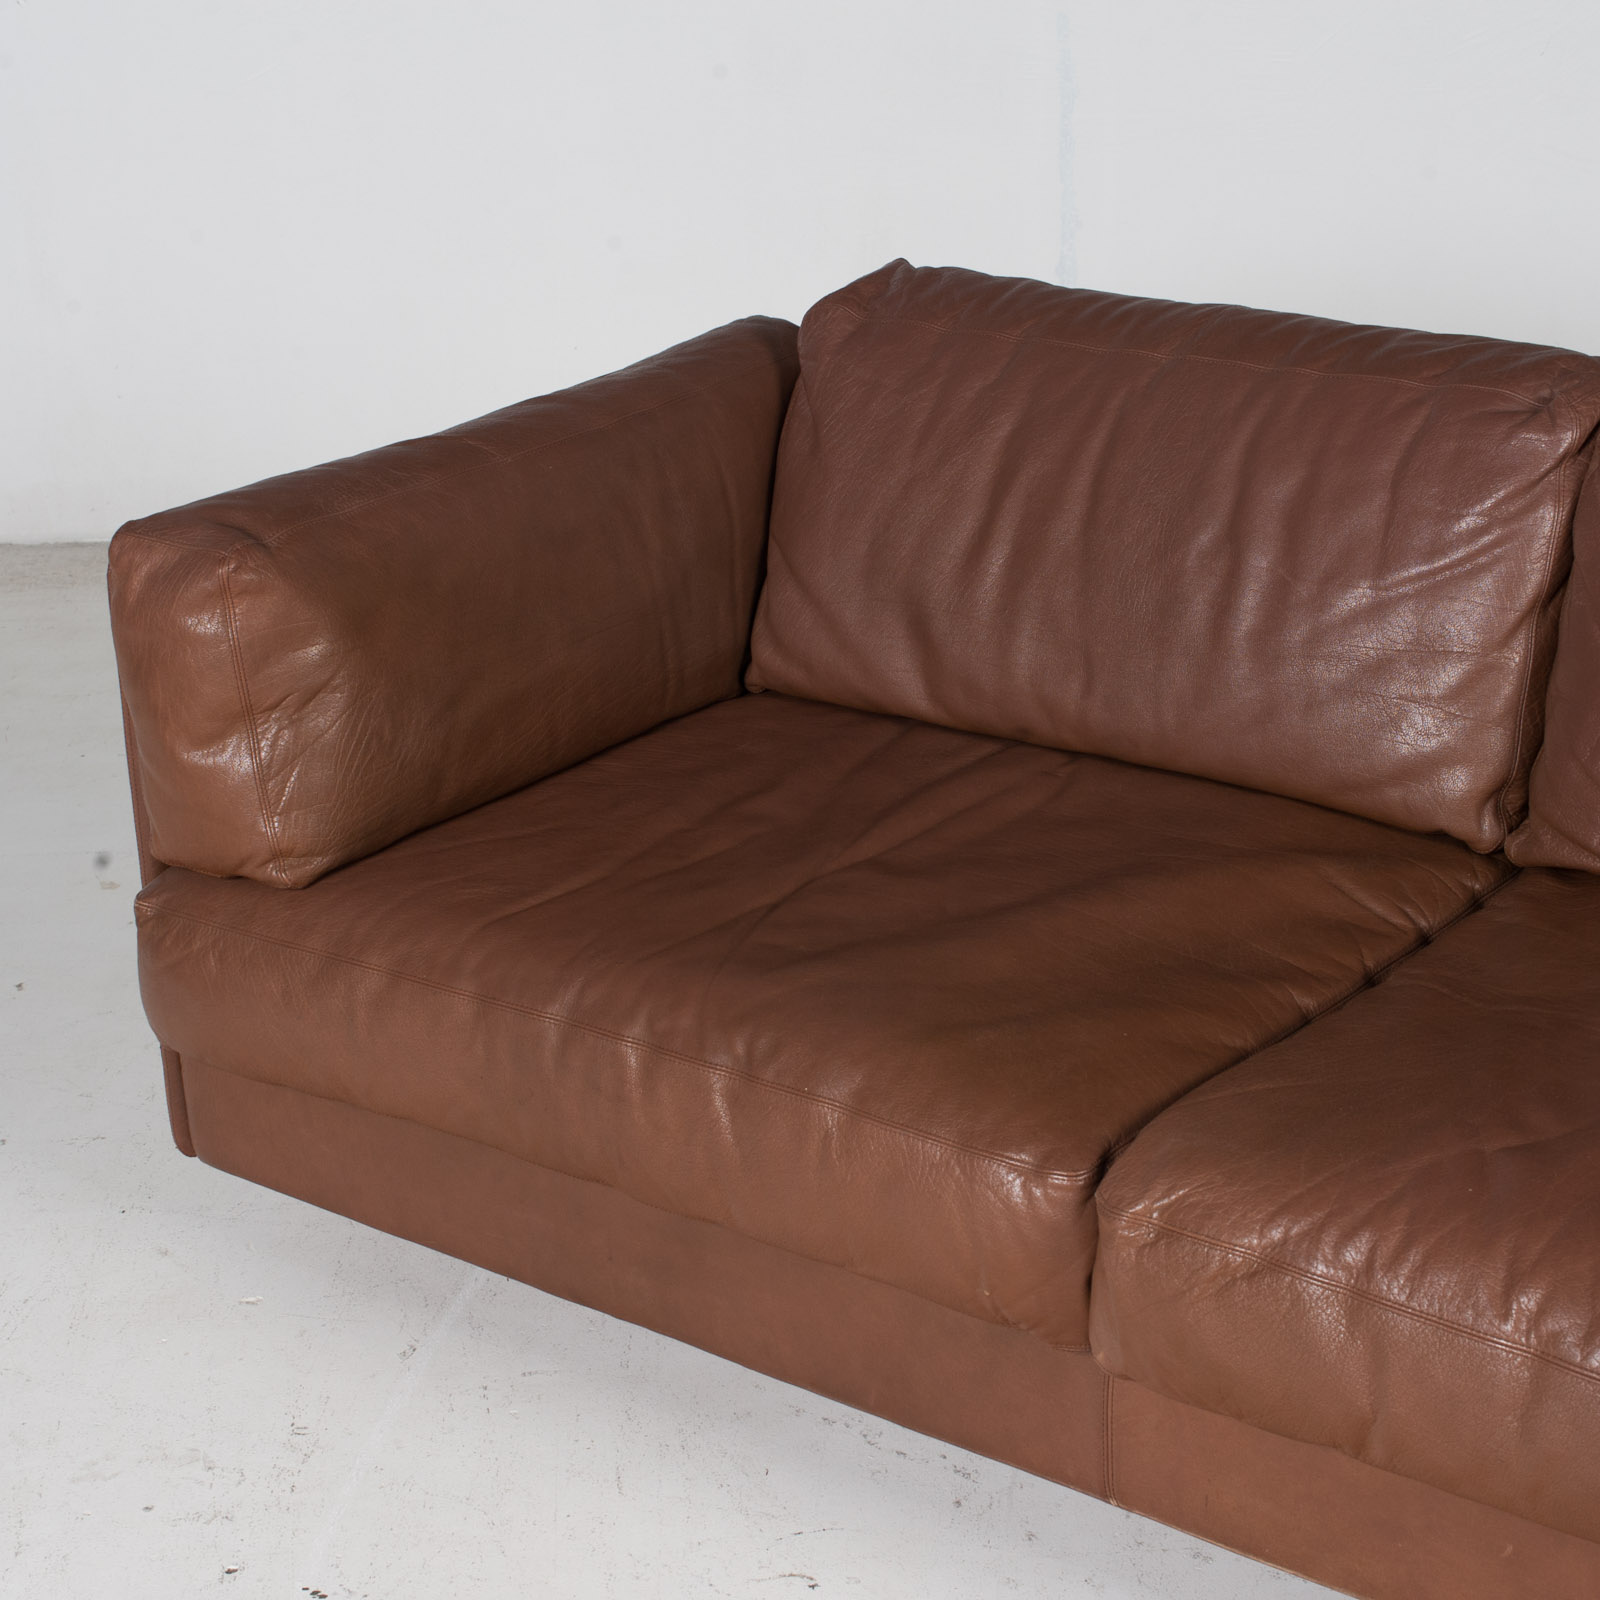 2 Seater Sofa In Brown Leather, 1960s, Switzerland 5